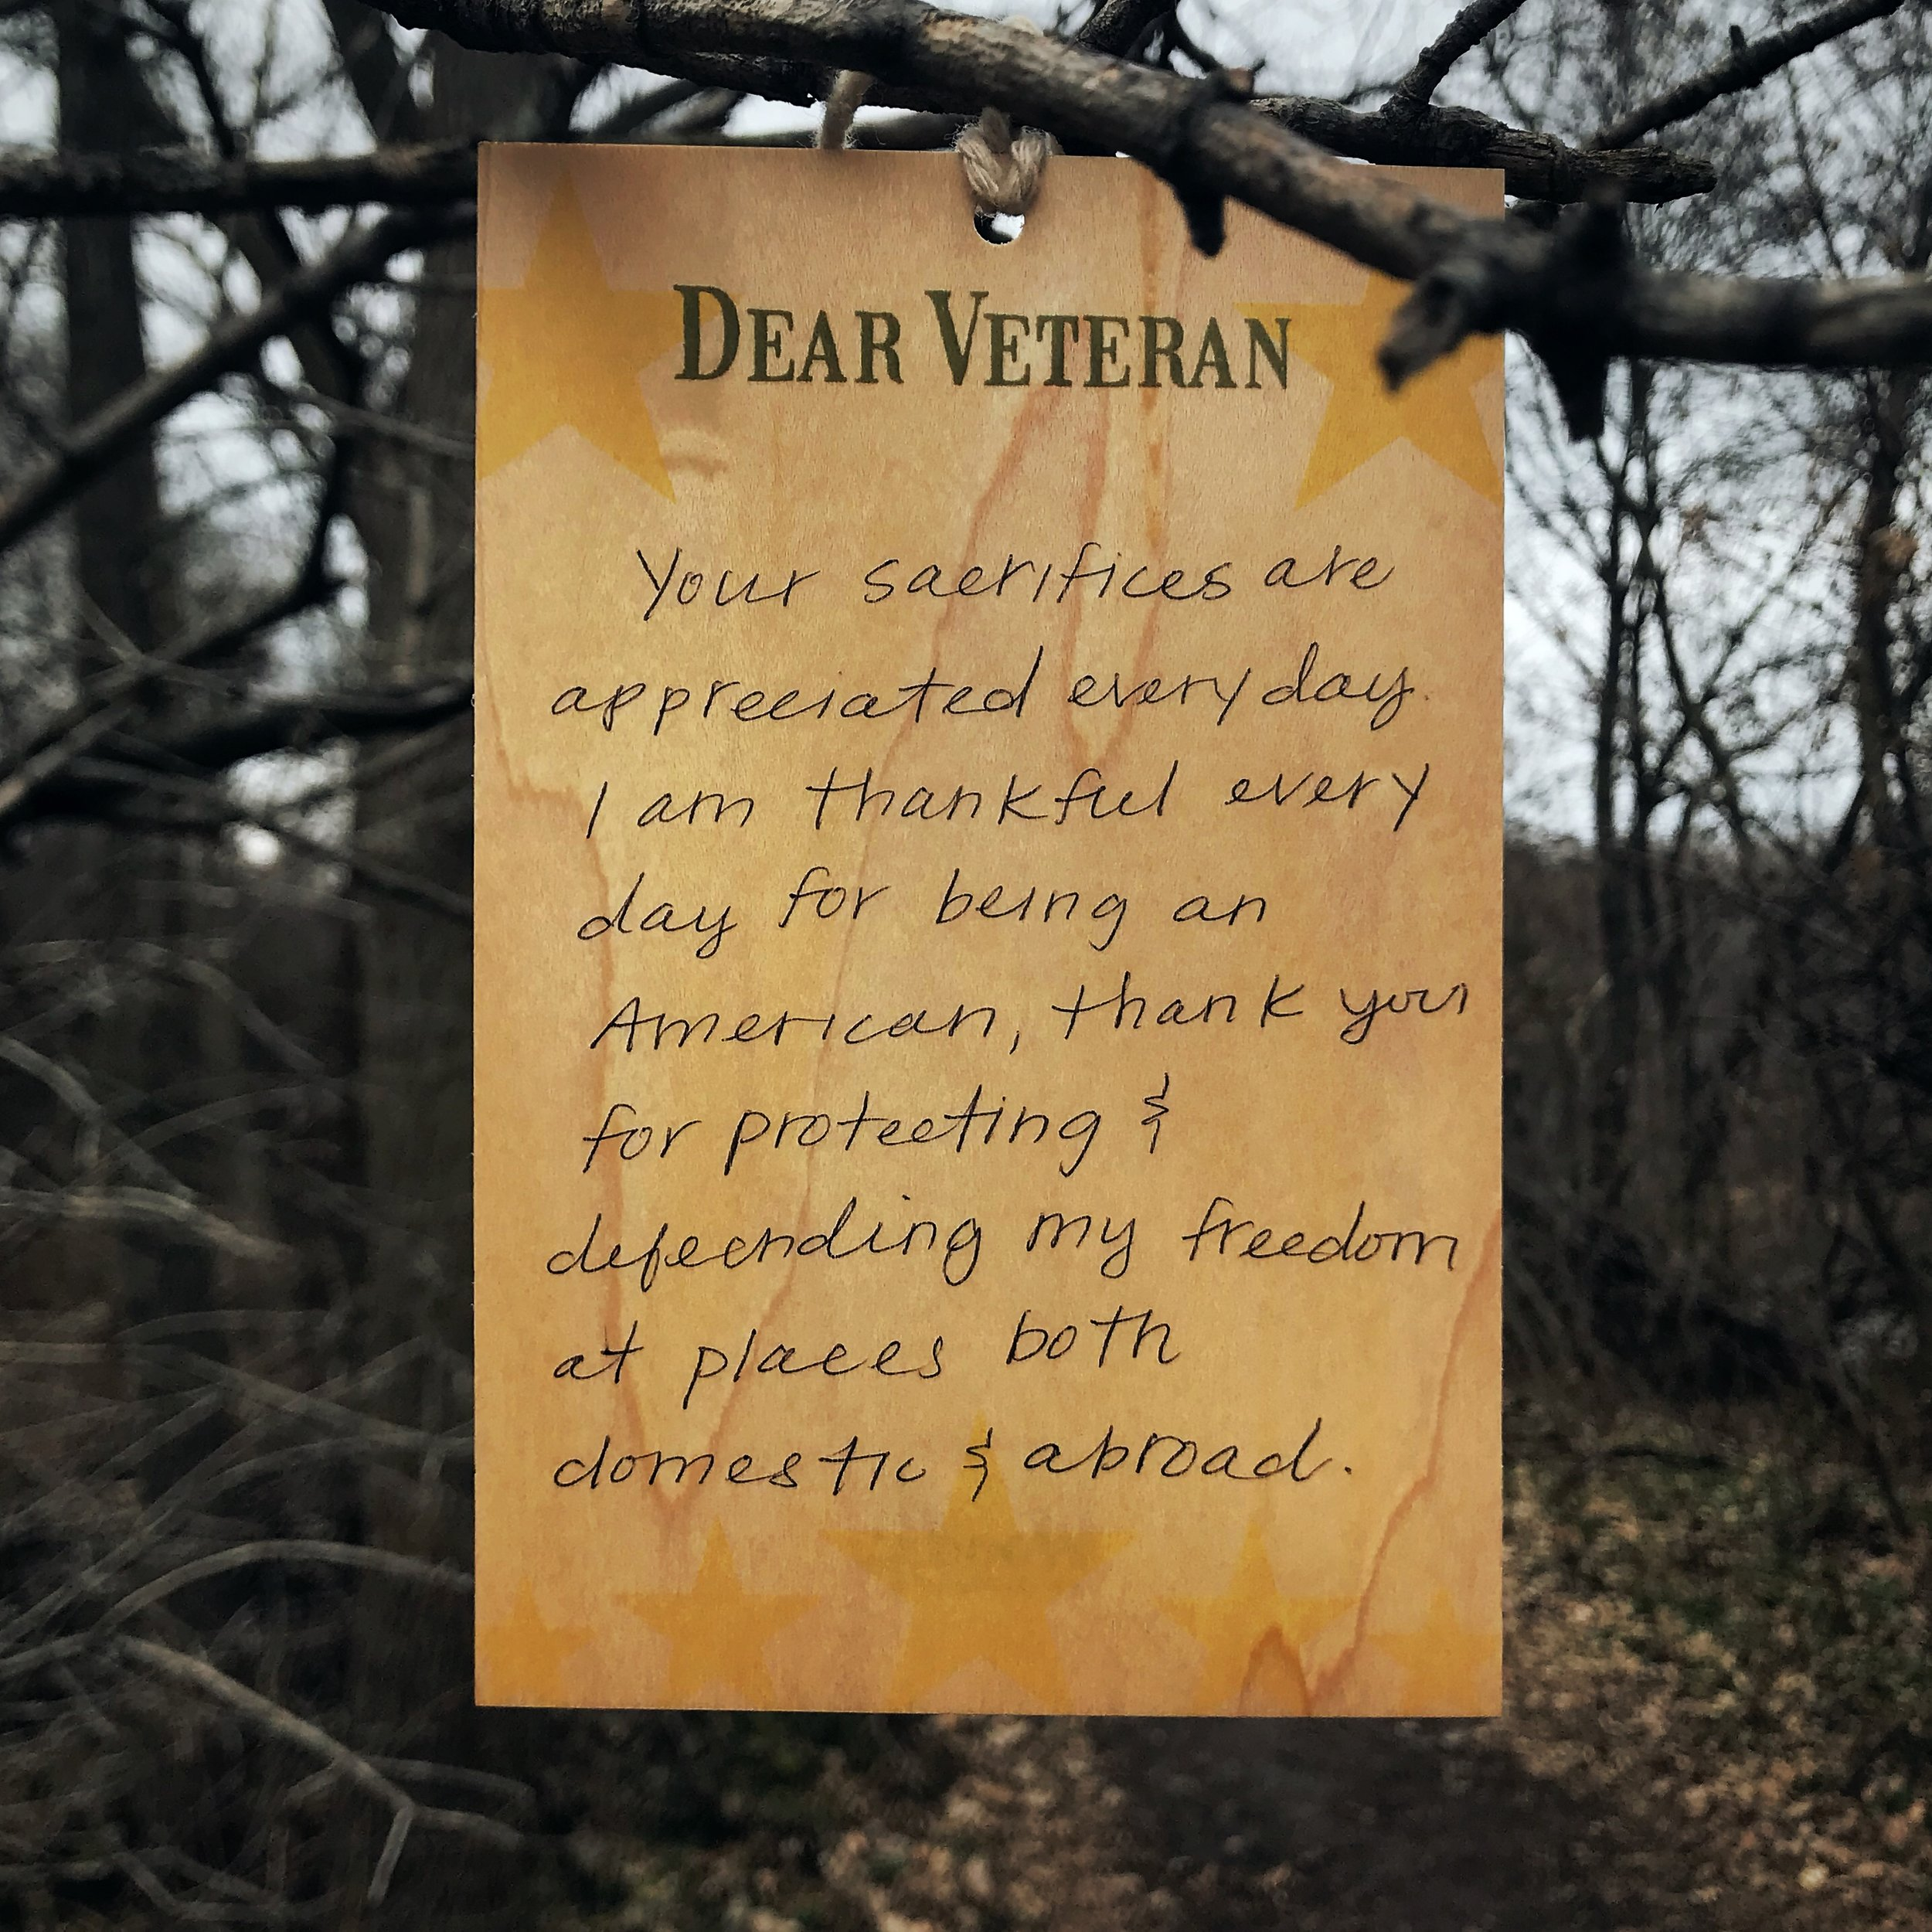 DearVeteran_DEC05_2017.JPG